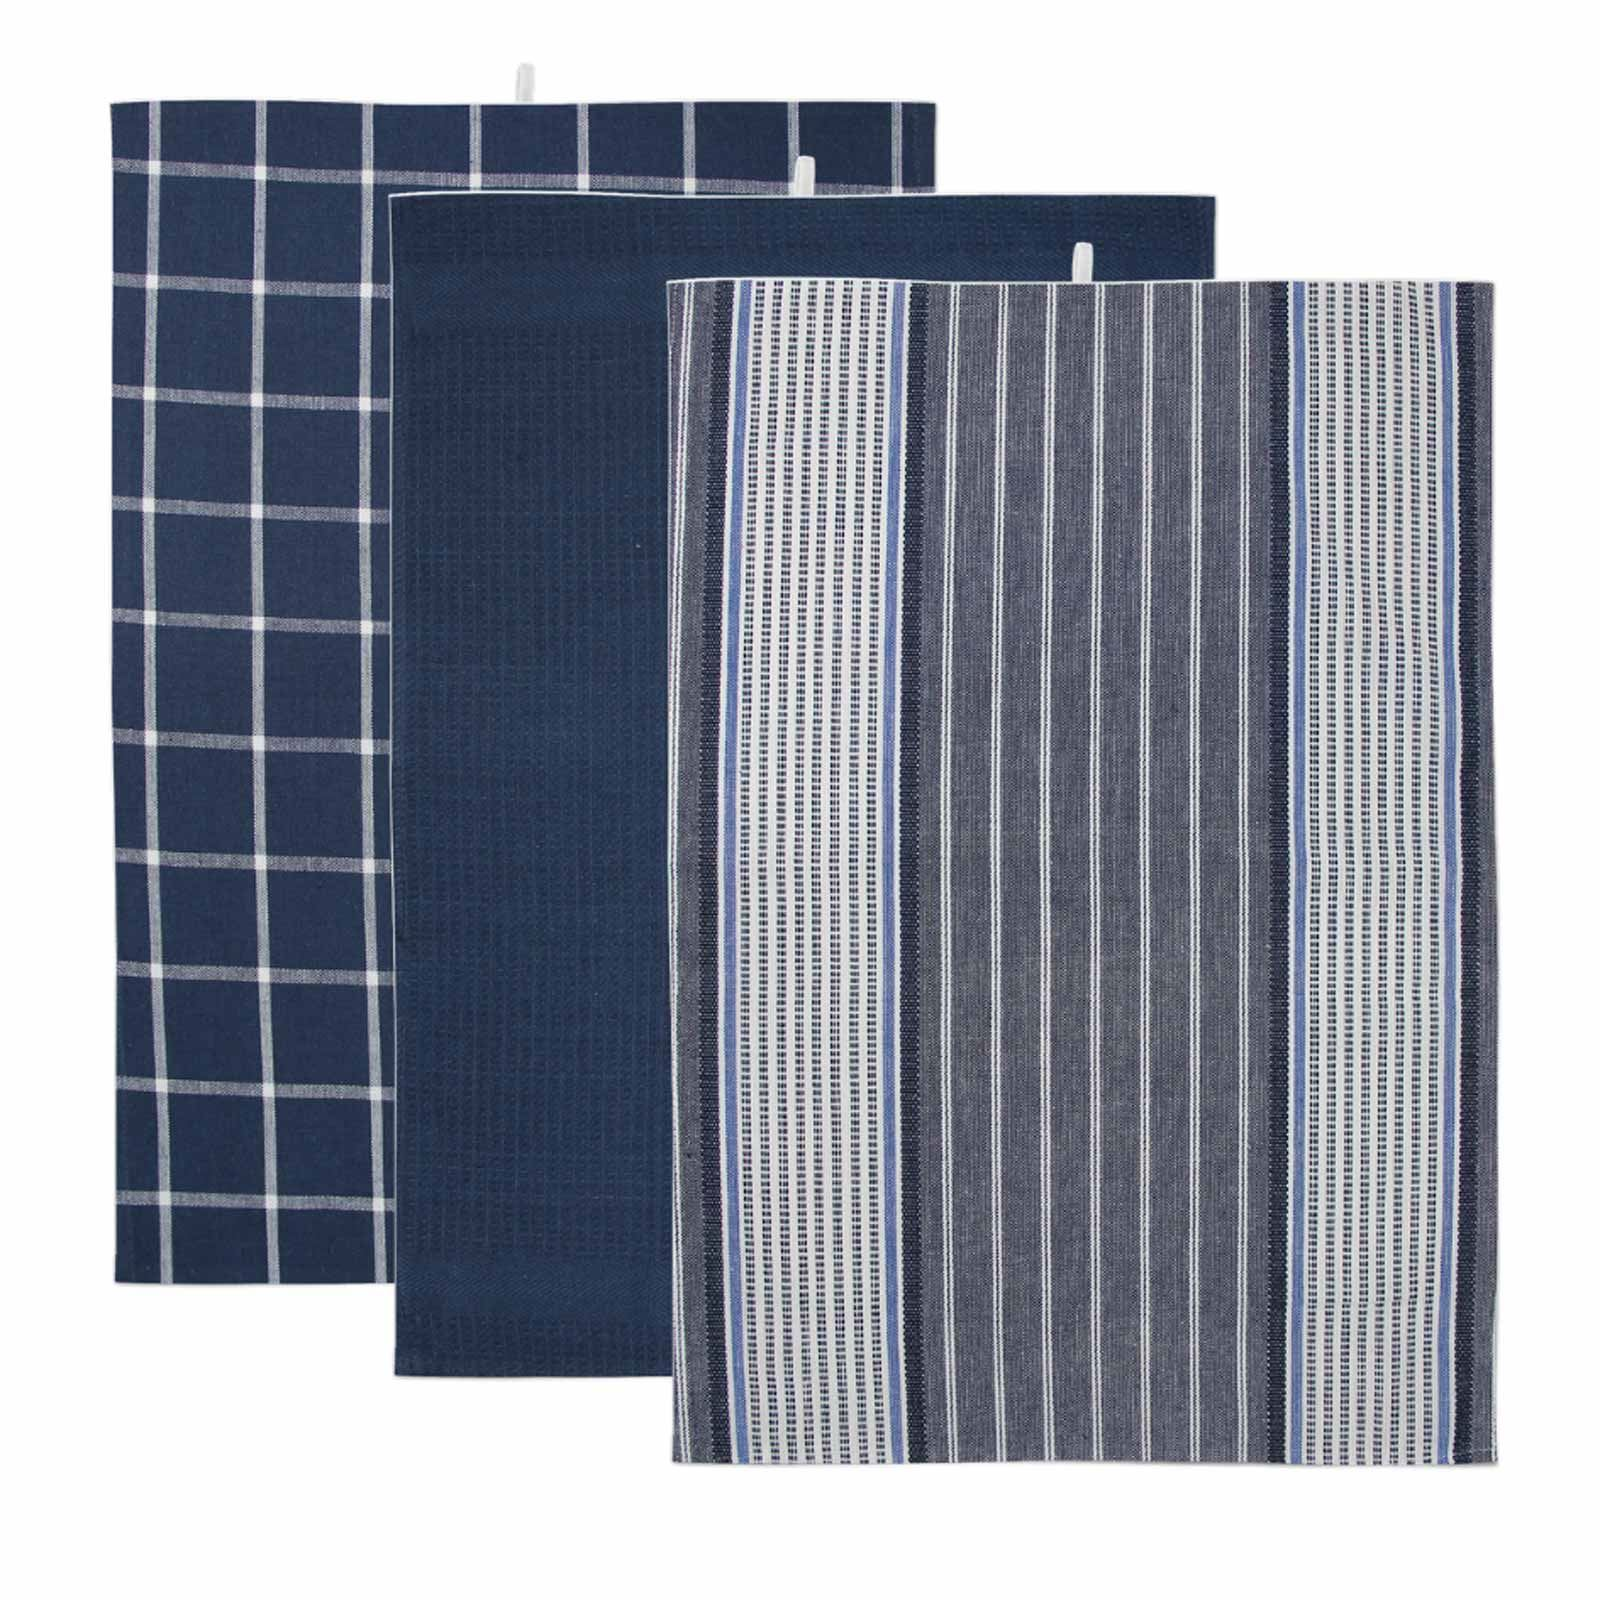 Pack-of-3-Tea-Towels-100-Cotton-Kitchen-Dish-Towel-Drying-Set thumbnail 33